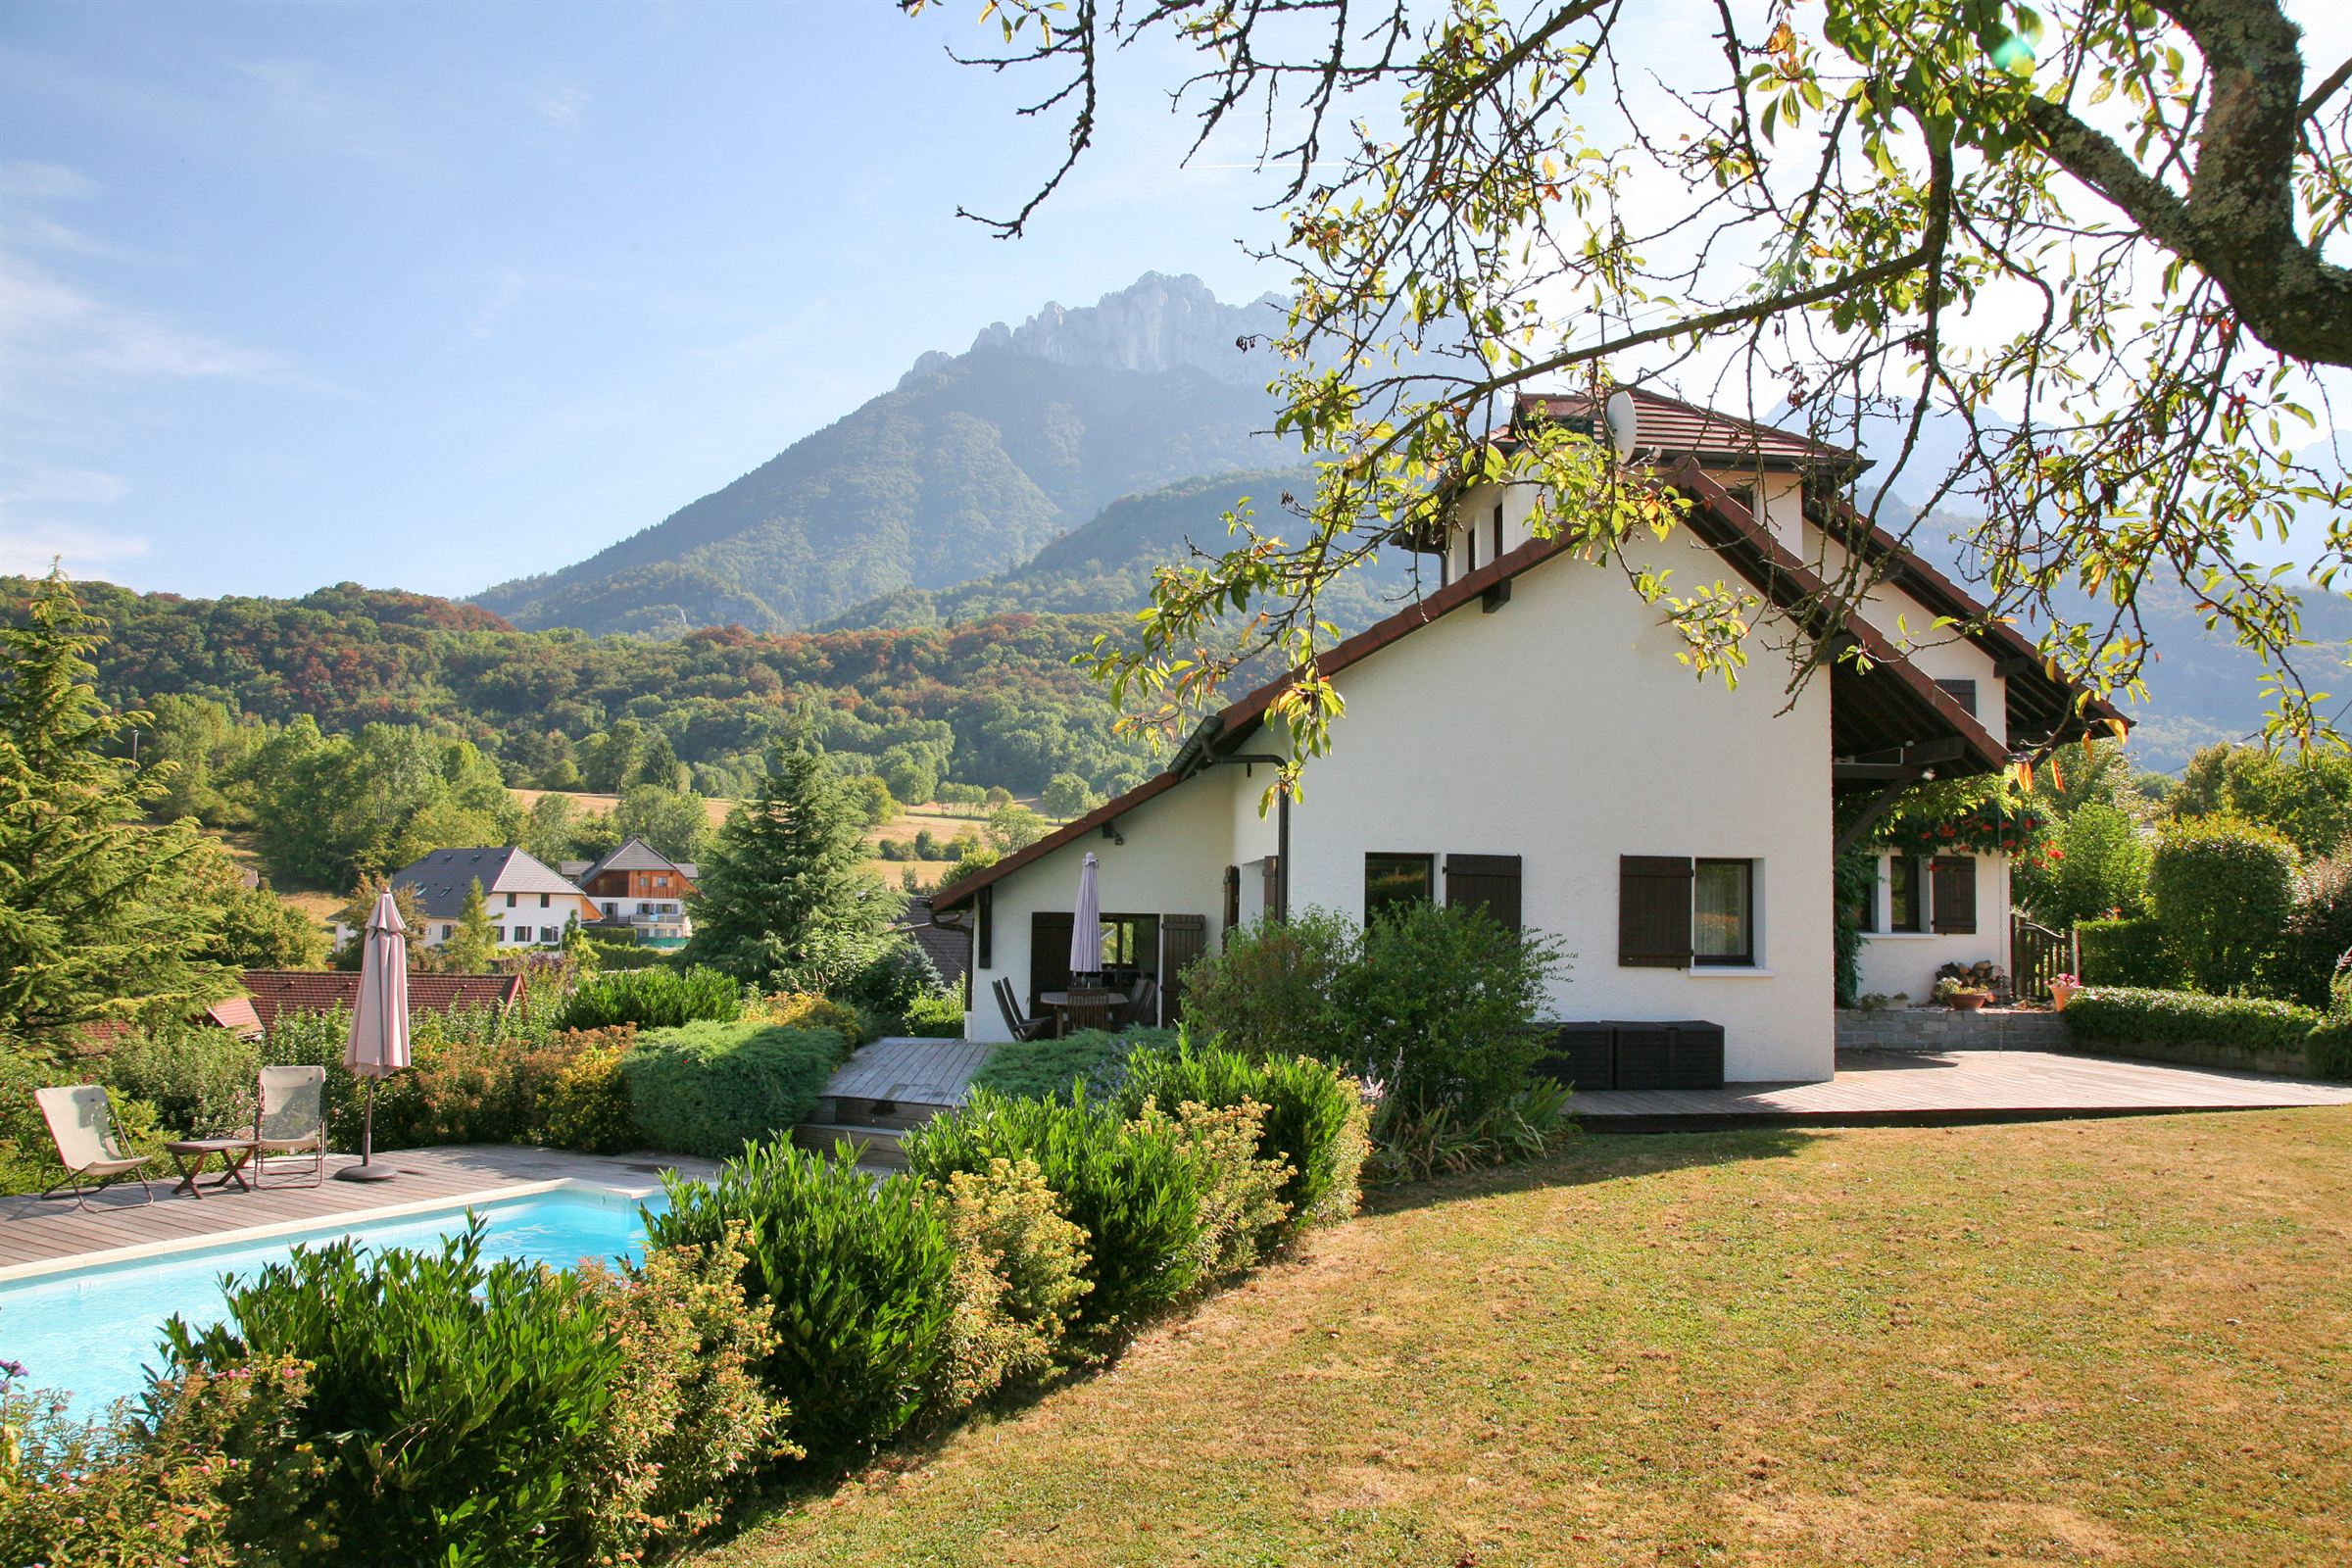 Moradia para Venda às Quality villa with fine finishes, lakeview and mountainview, heated pool Talloires, Rhone-Alpes, 74290 França